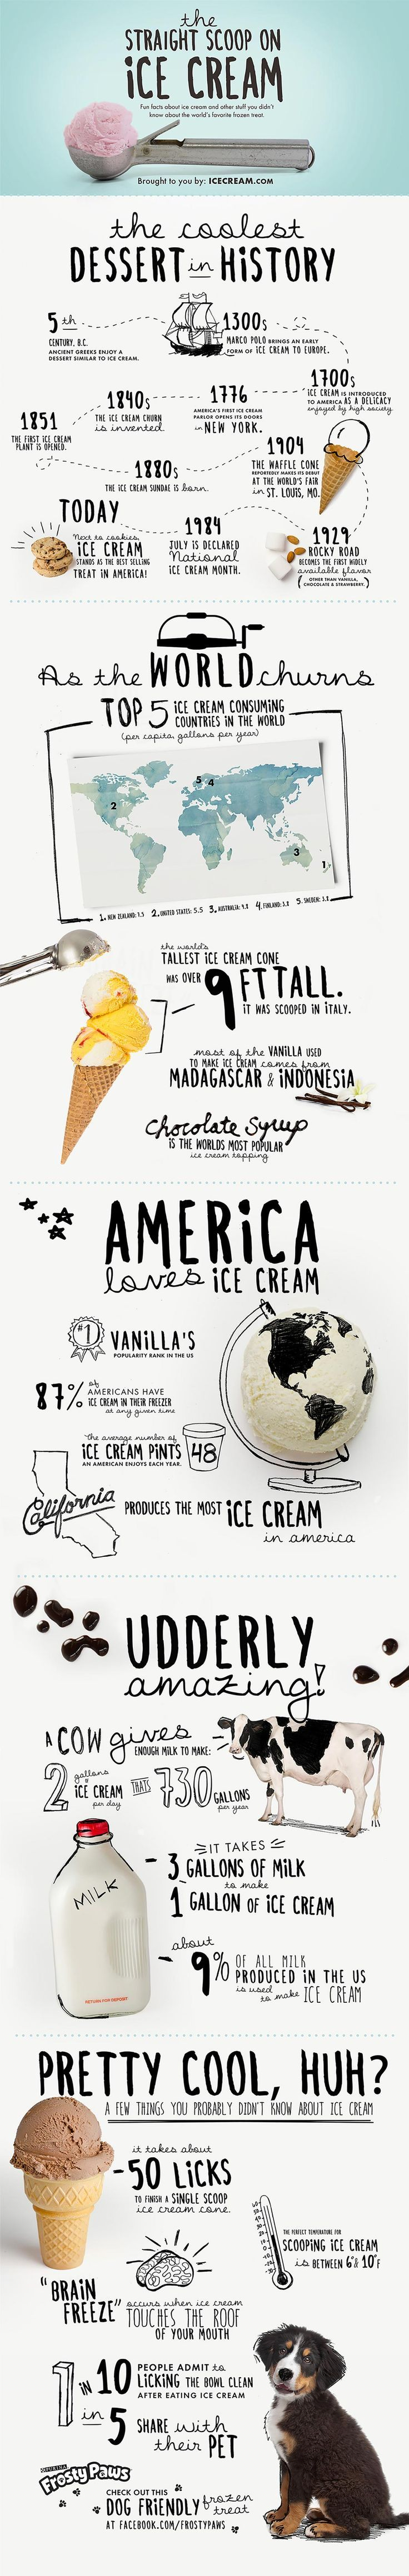 Awesome infographic design. The straight scoop on ice cream.